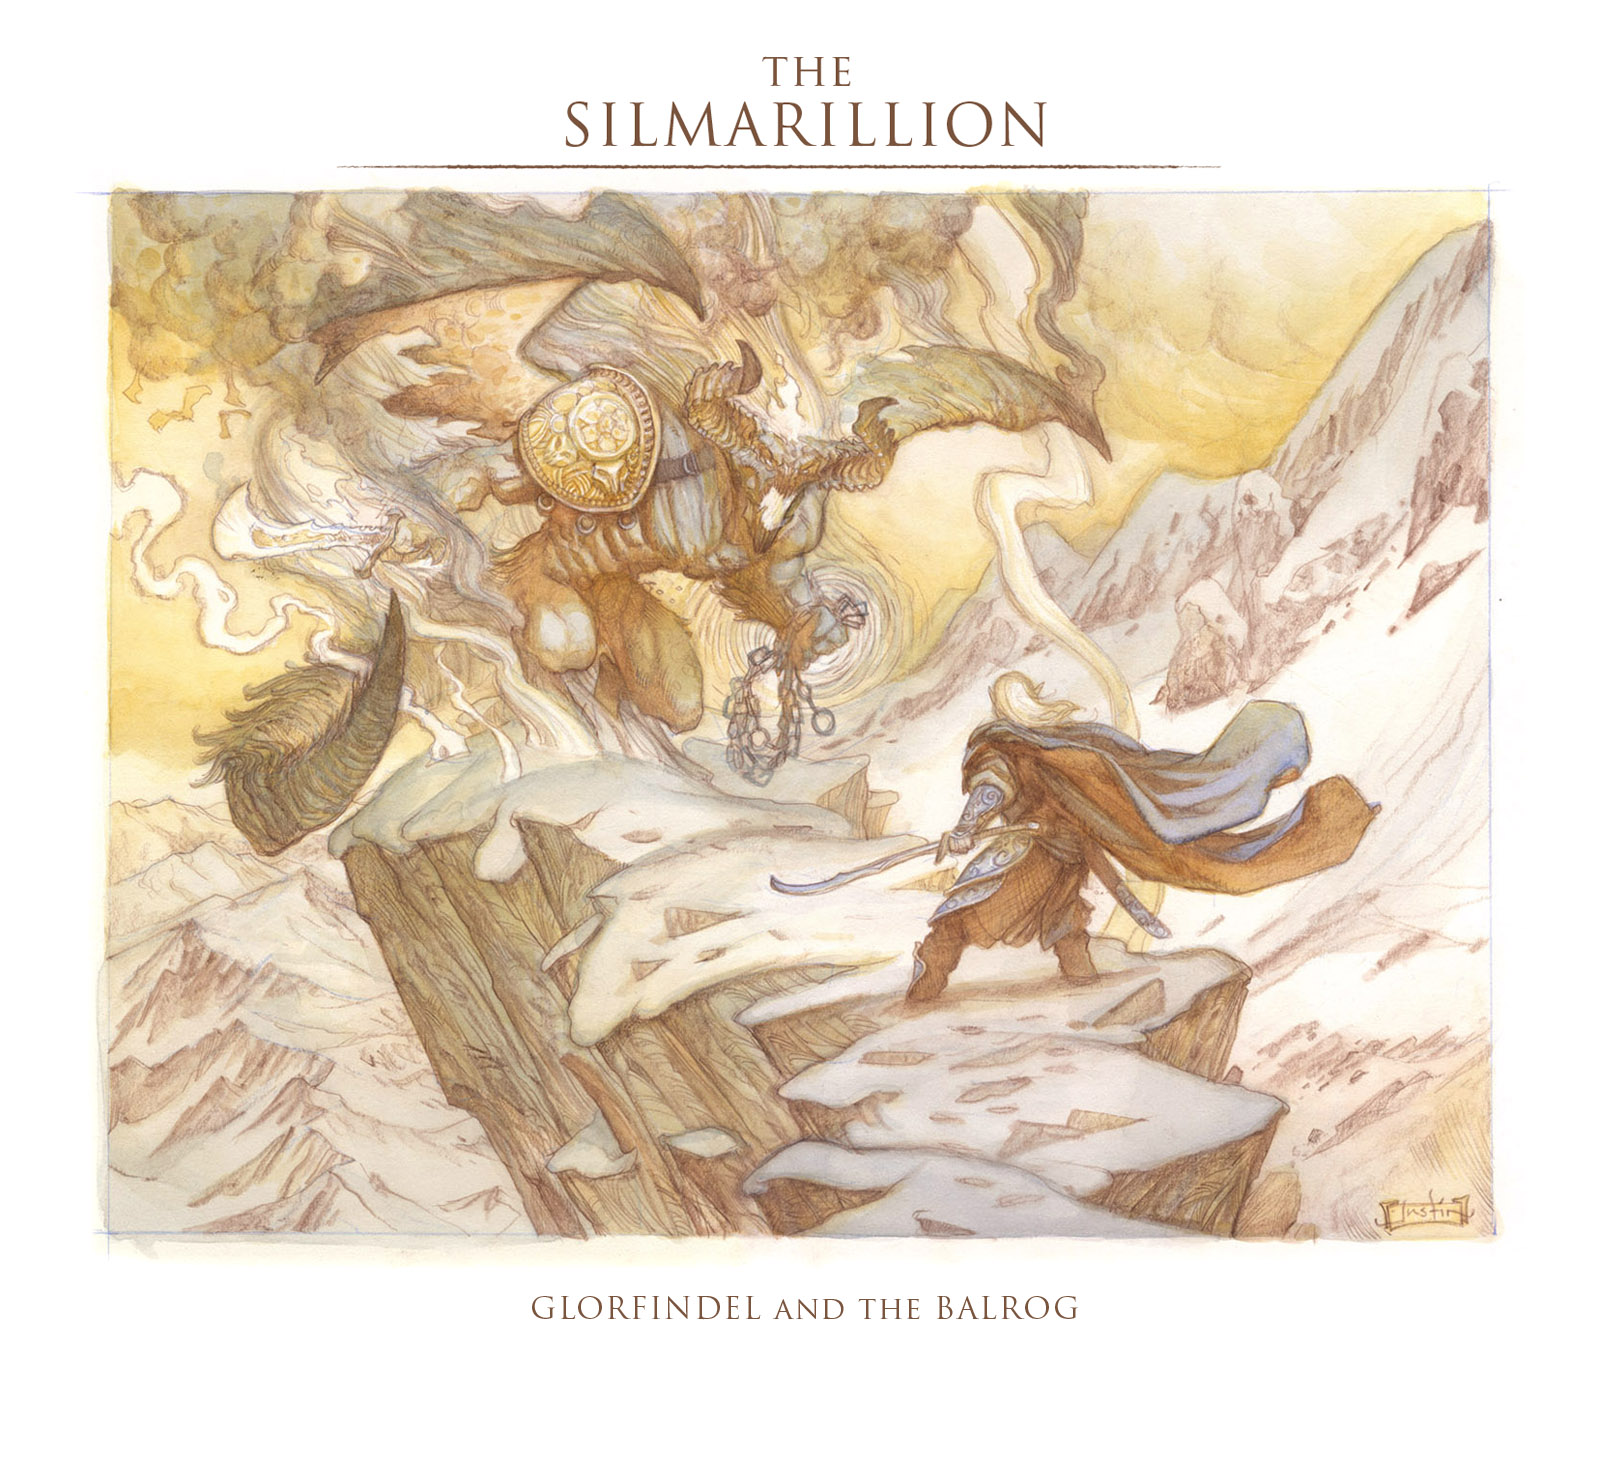 The Silmarillion: Glorfindel and the Balrog